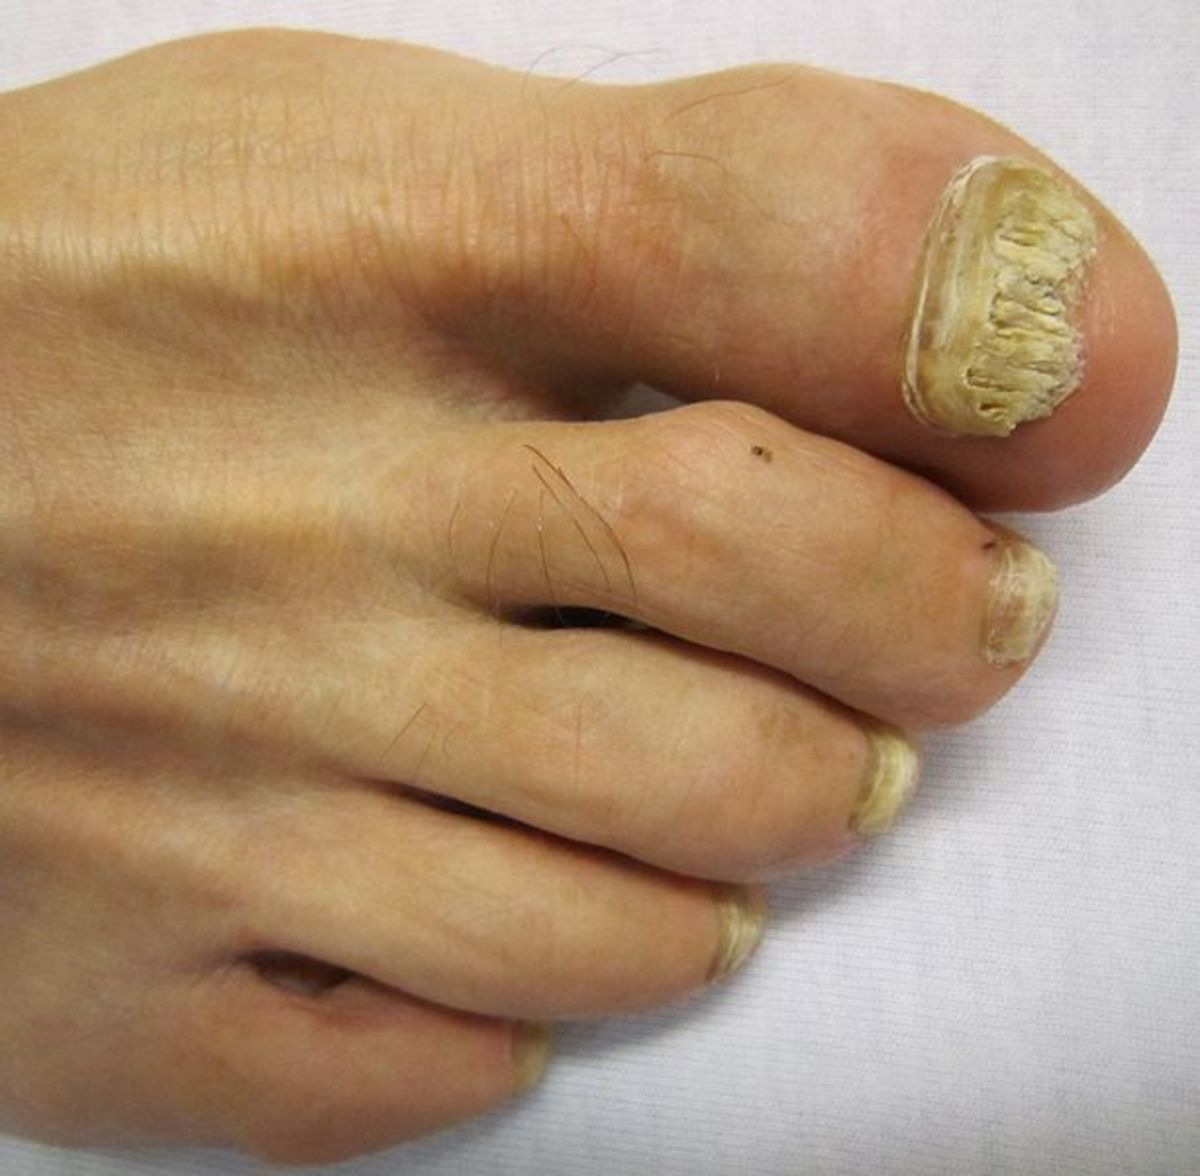 Toenail Fungus Home Remedies | RemedyGrove